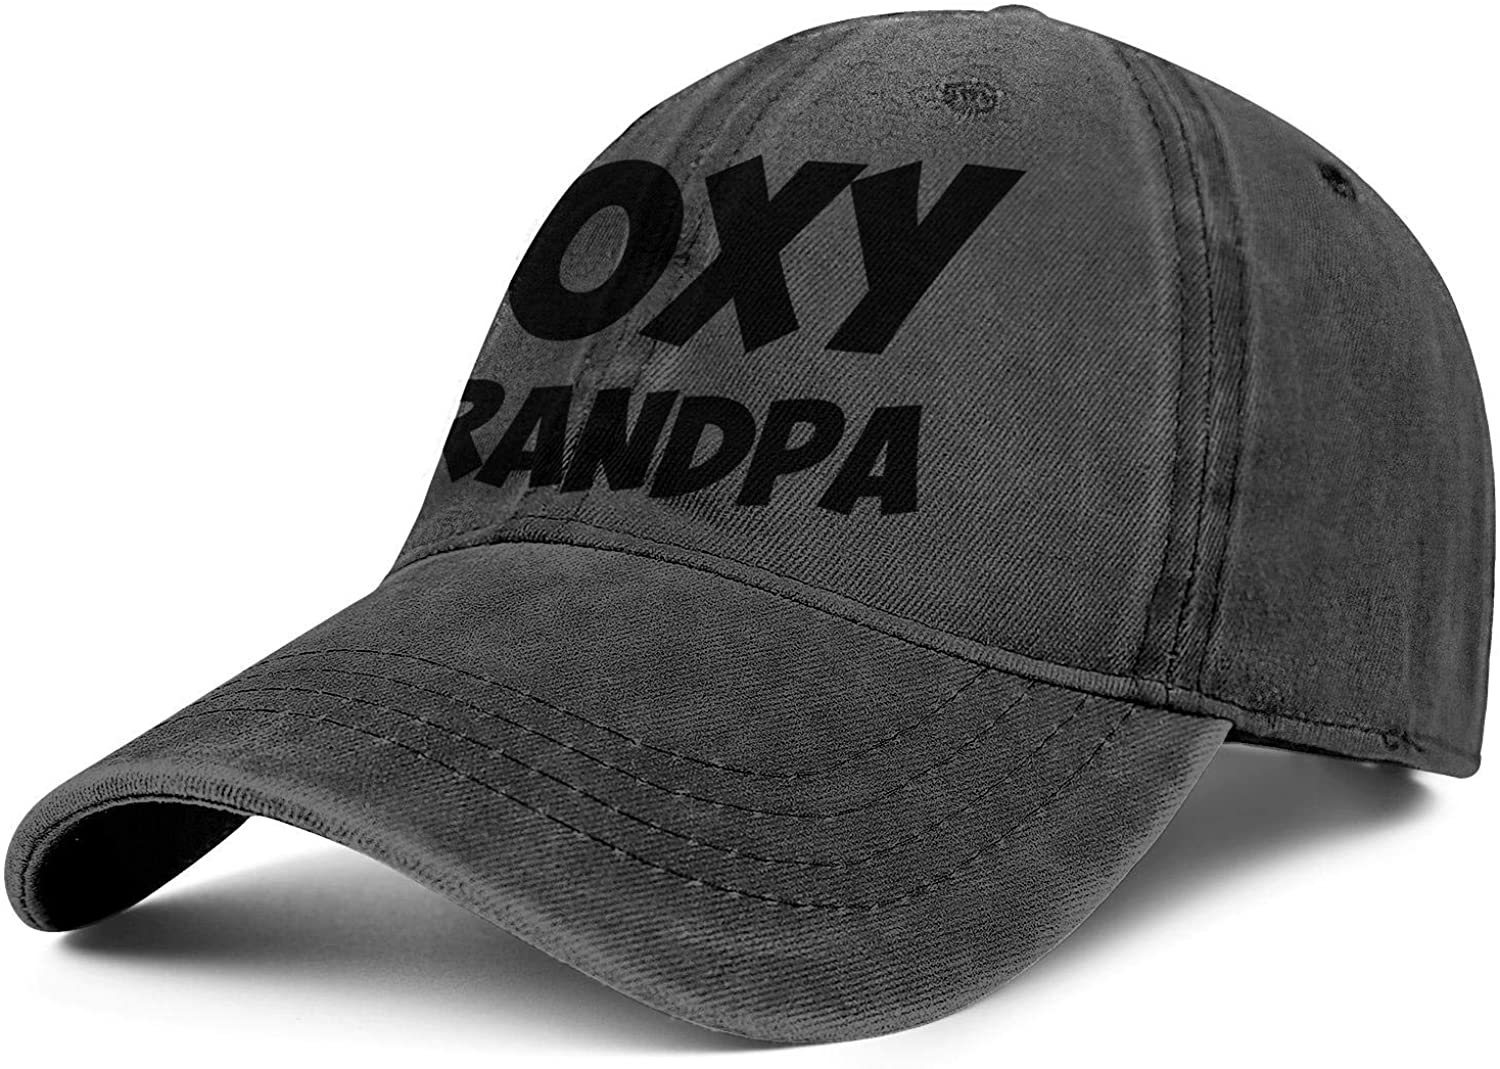 Foxy Grandpa Unisex Stylish Washed All Cotton Flat Cap Fitted Snapback hat Sport Cap